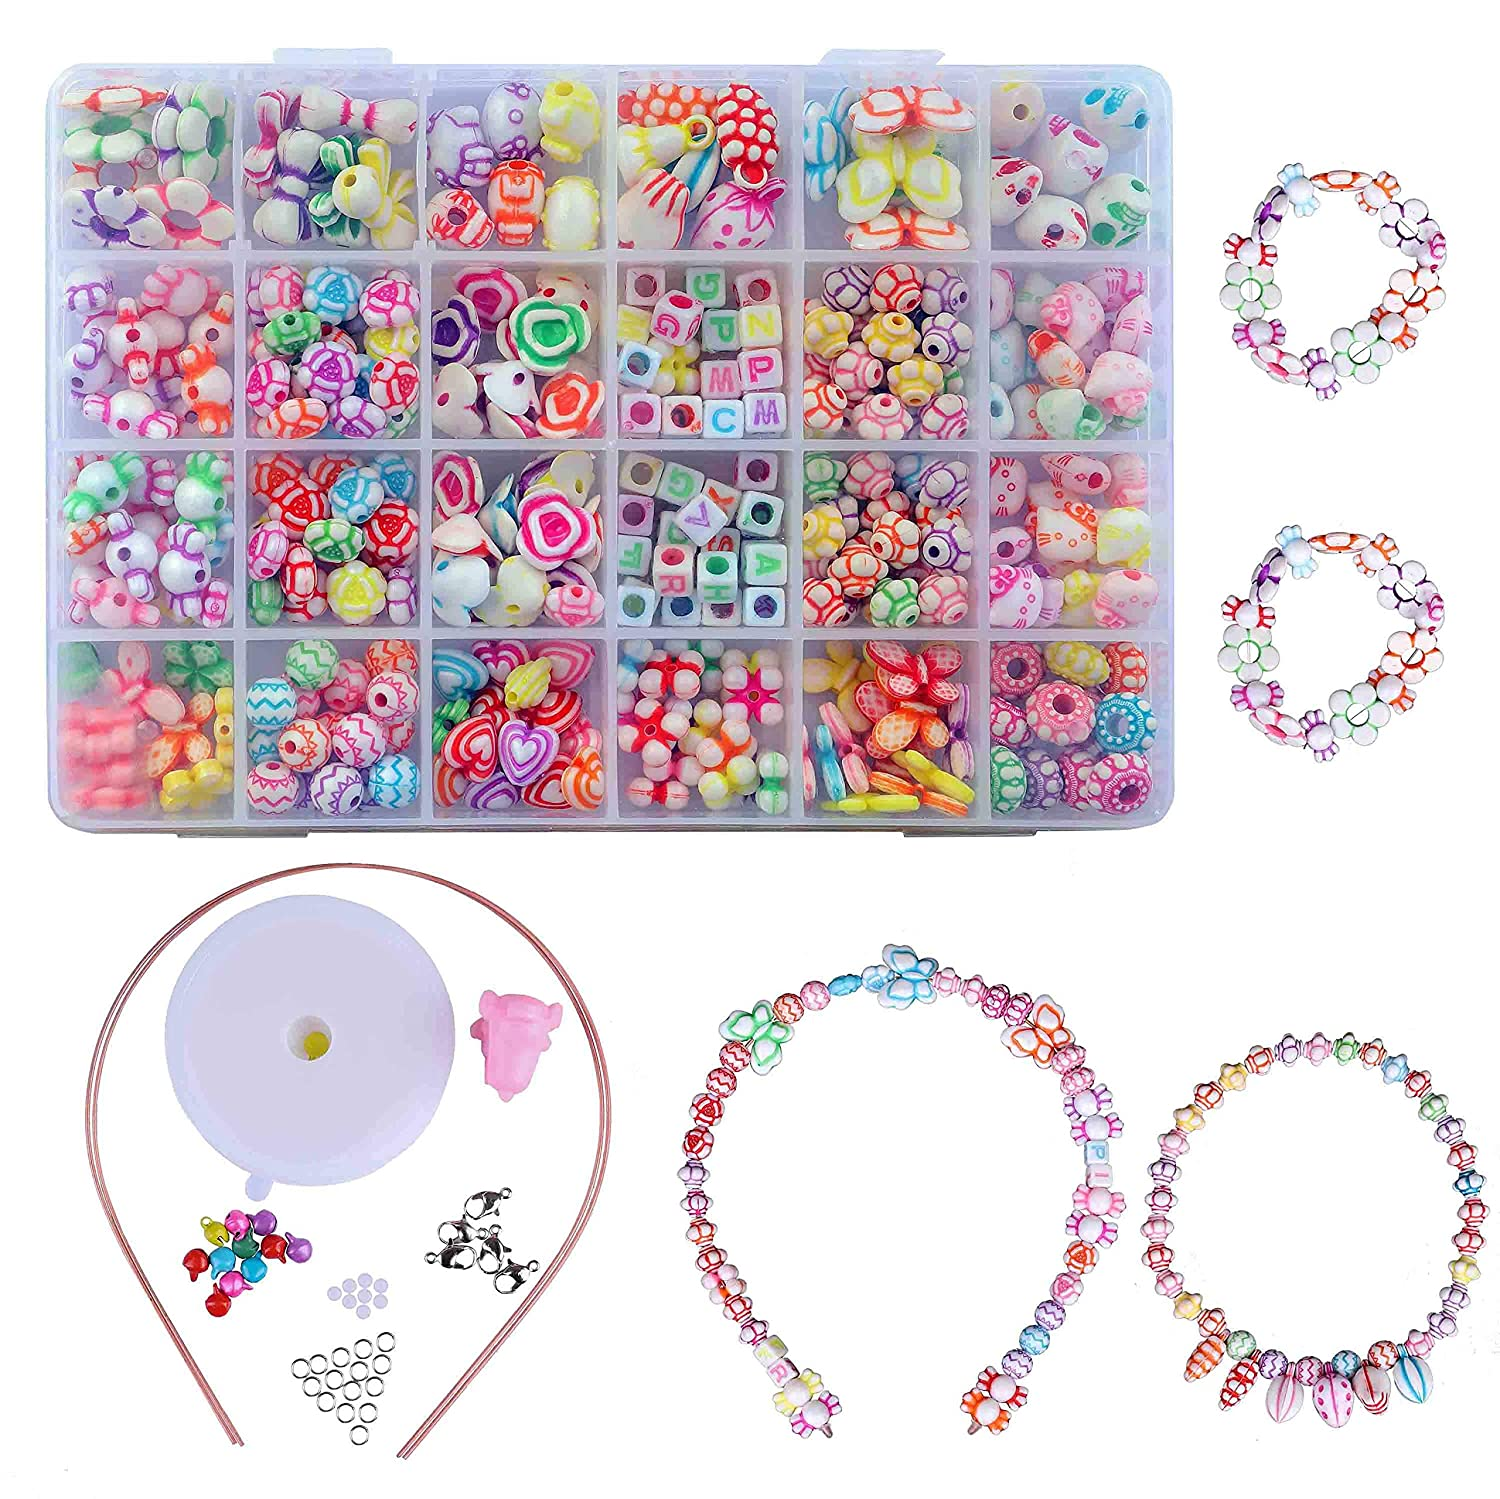 Kid Bead DIY Colorful Plastic Jewellery Making kit 24 Compartments Bracelets Making Bead Art Kit in PVC Box as Gift for Children Girls 400 Pieces